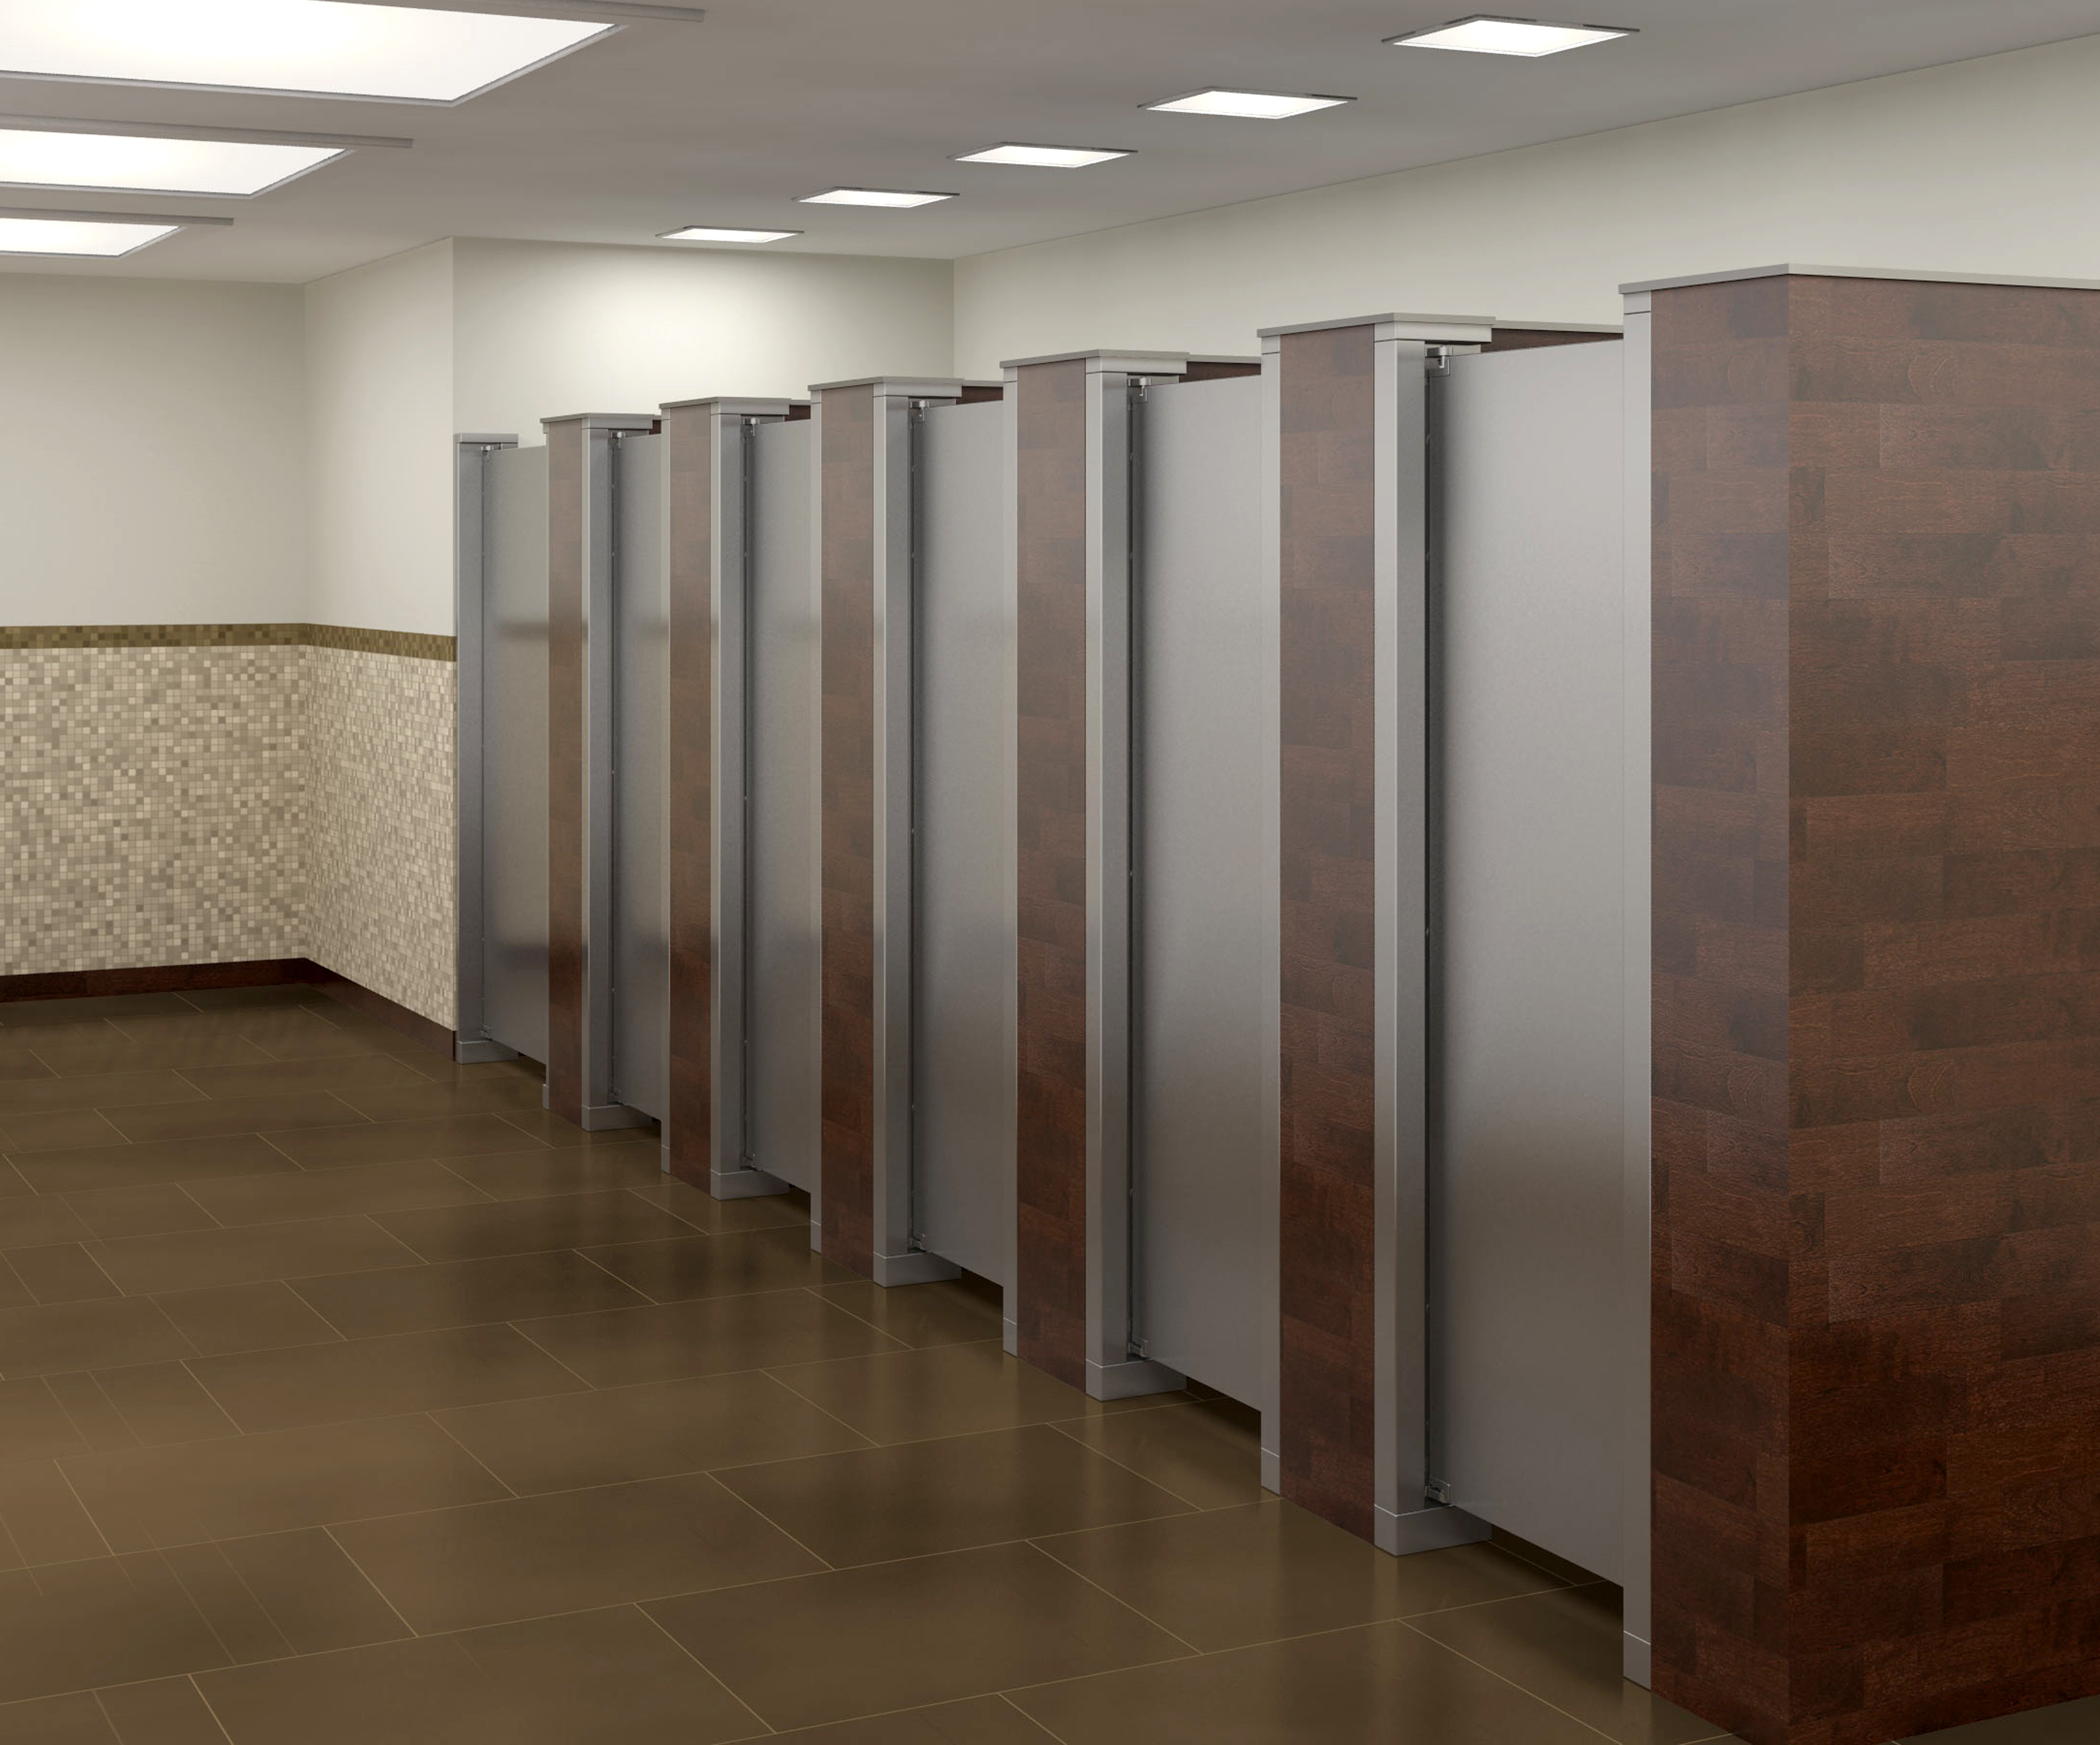 Bradley - ToiletPartitions stainless-steel-partitions-with-walls thumb